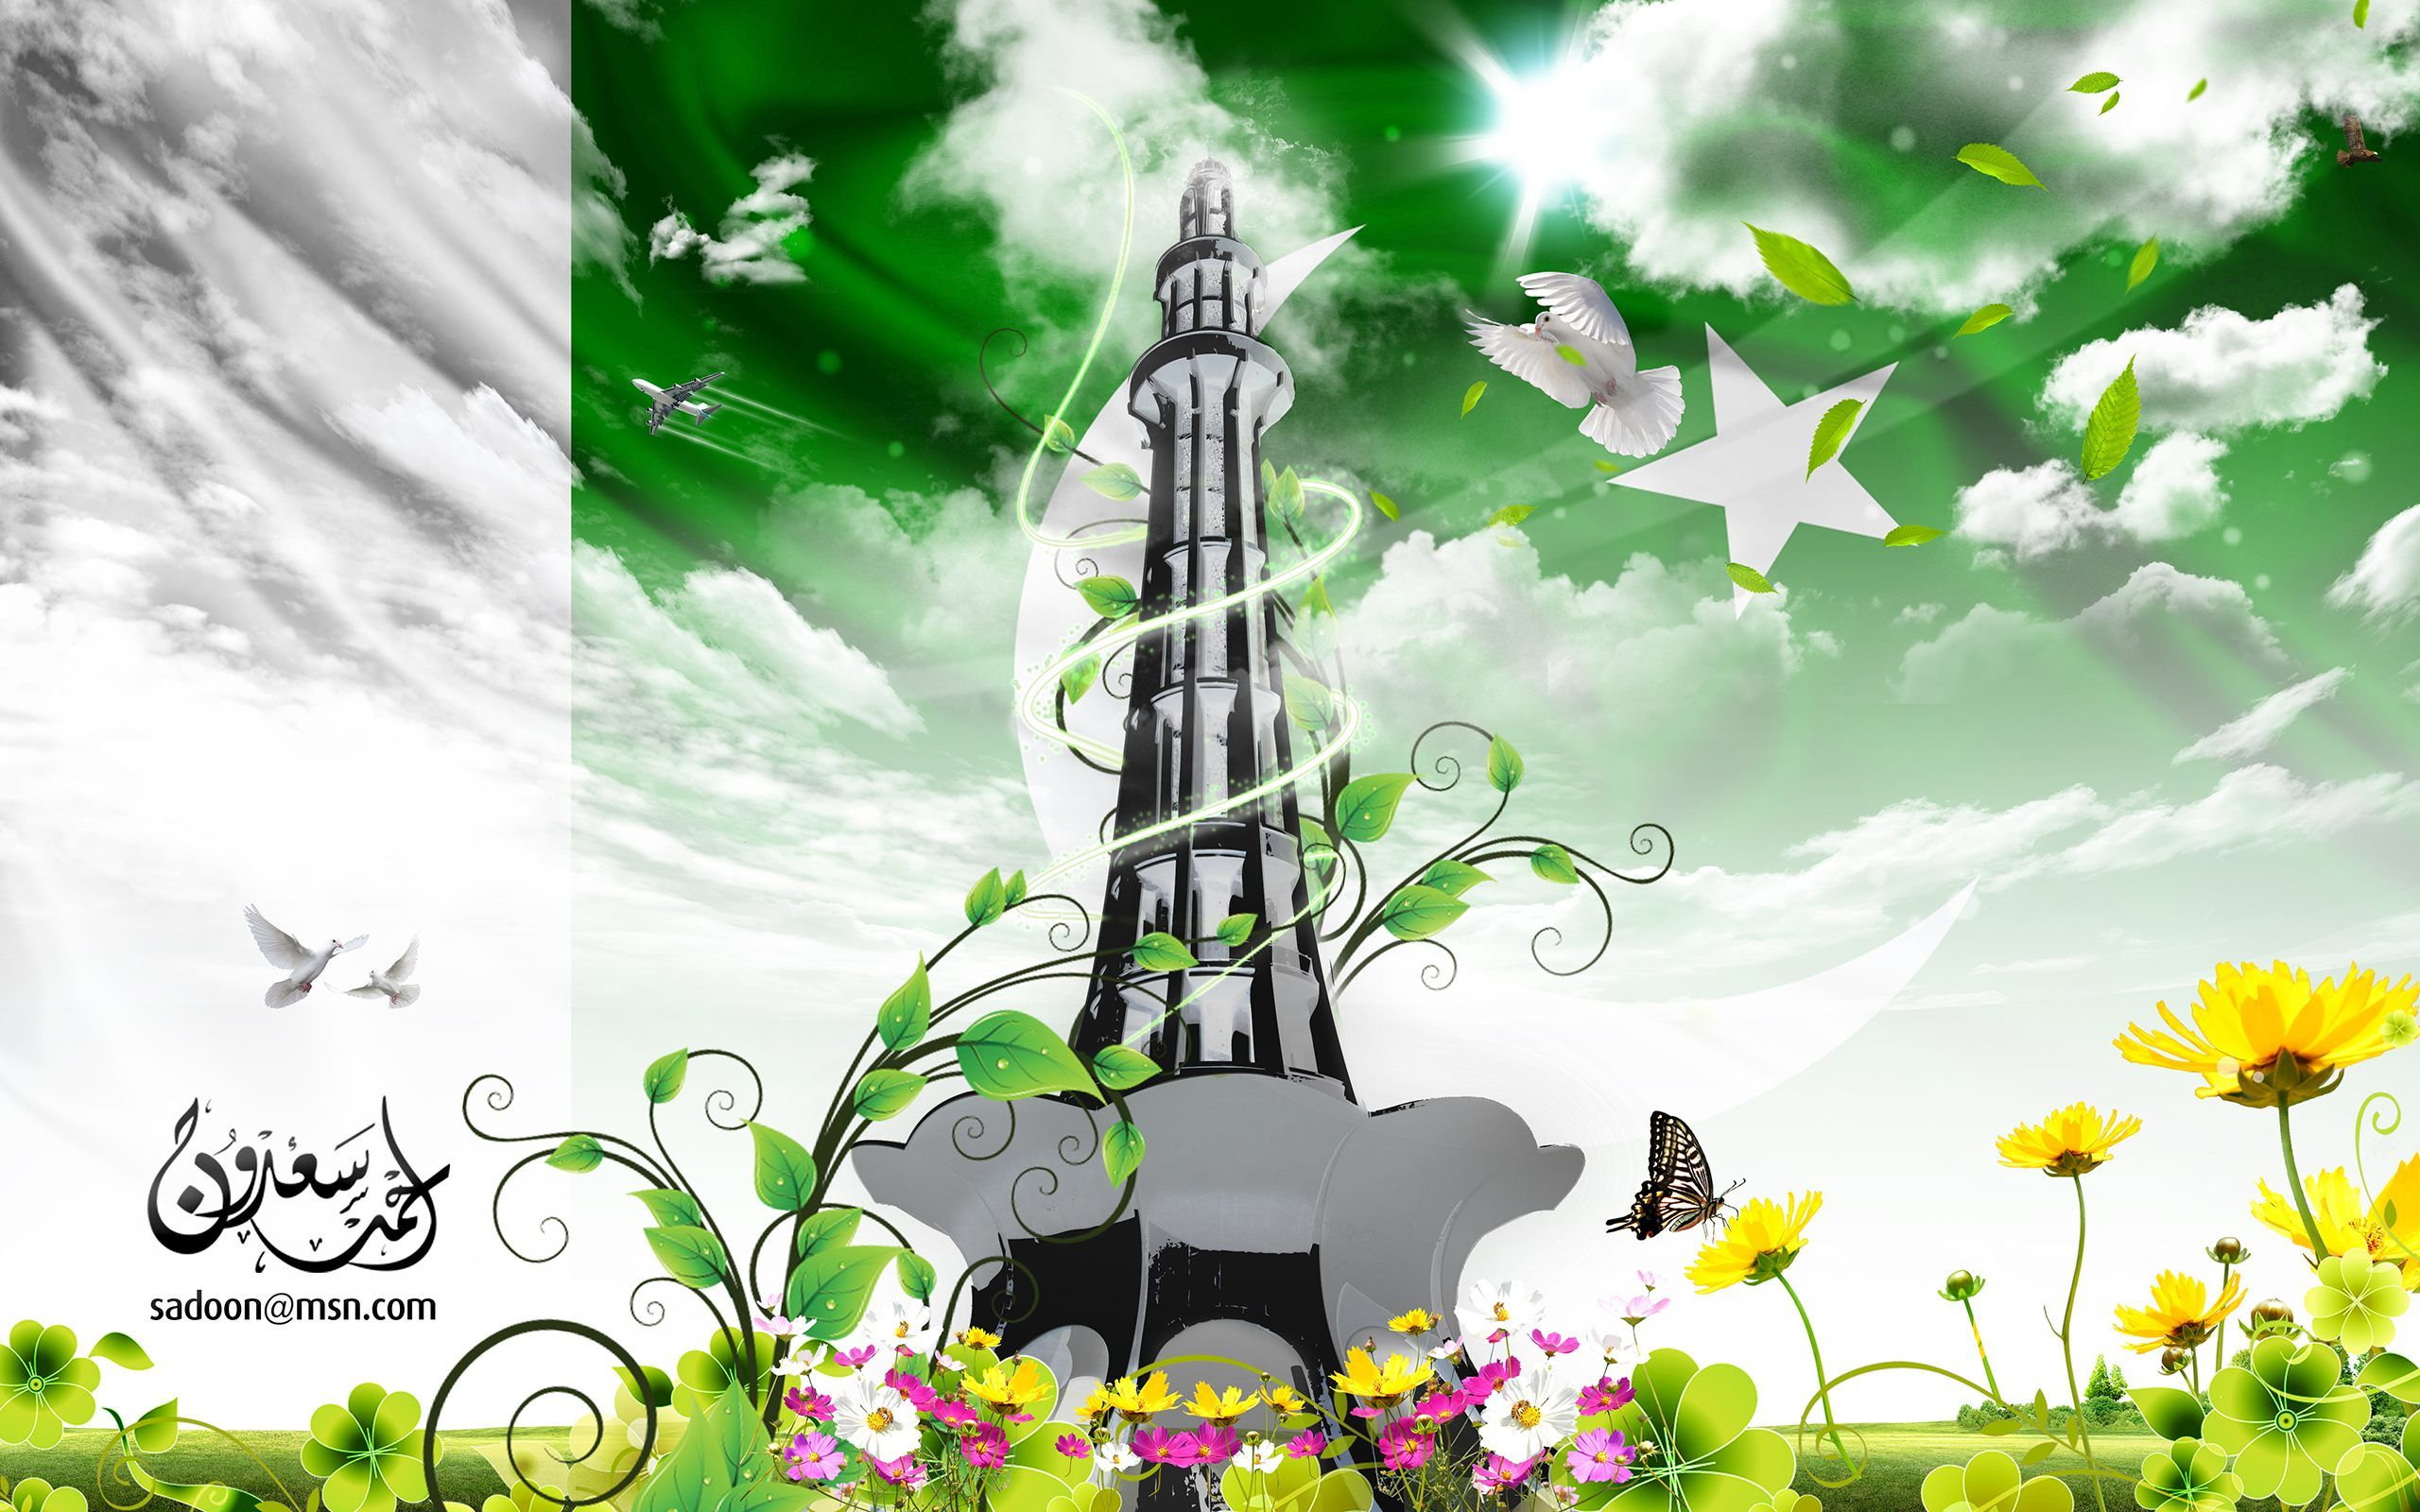 Pakistan Flag Wallpapers Android Apps On Google Play Pakistan Wallpaper Pakistan Flag Wallpaper August Wallpaper